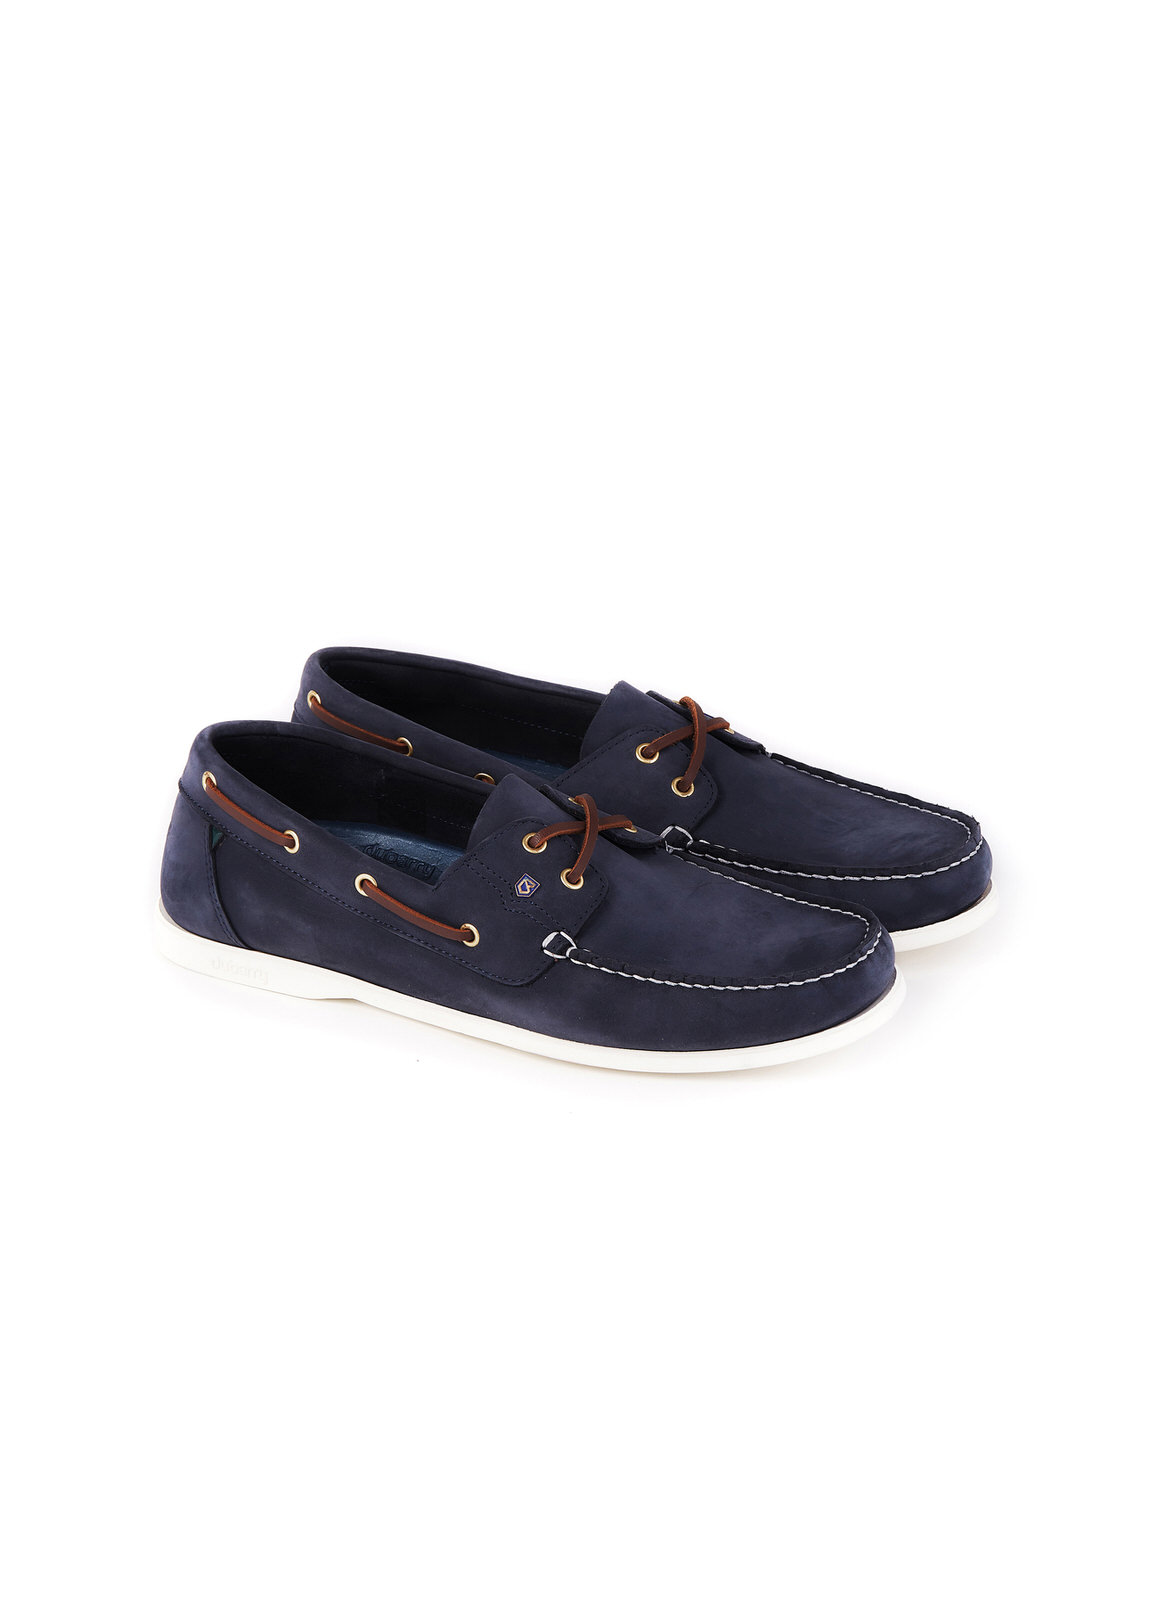 Port_Moccasin_Denim_Image_1